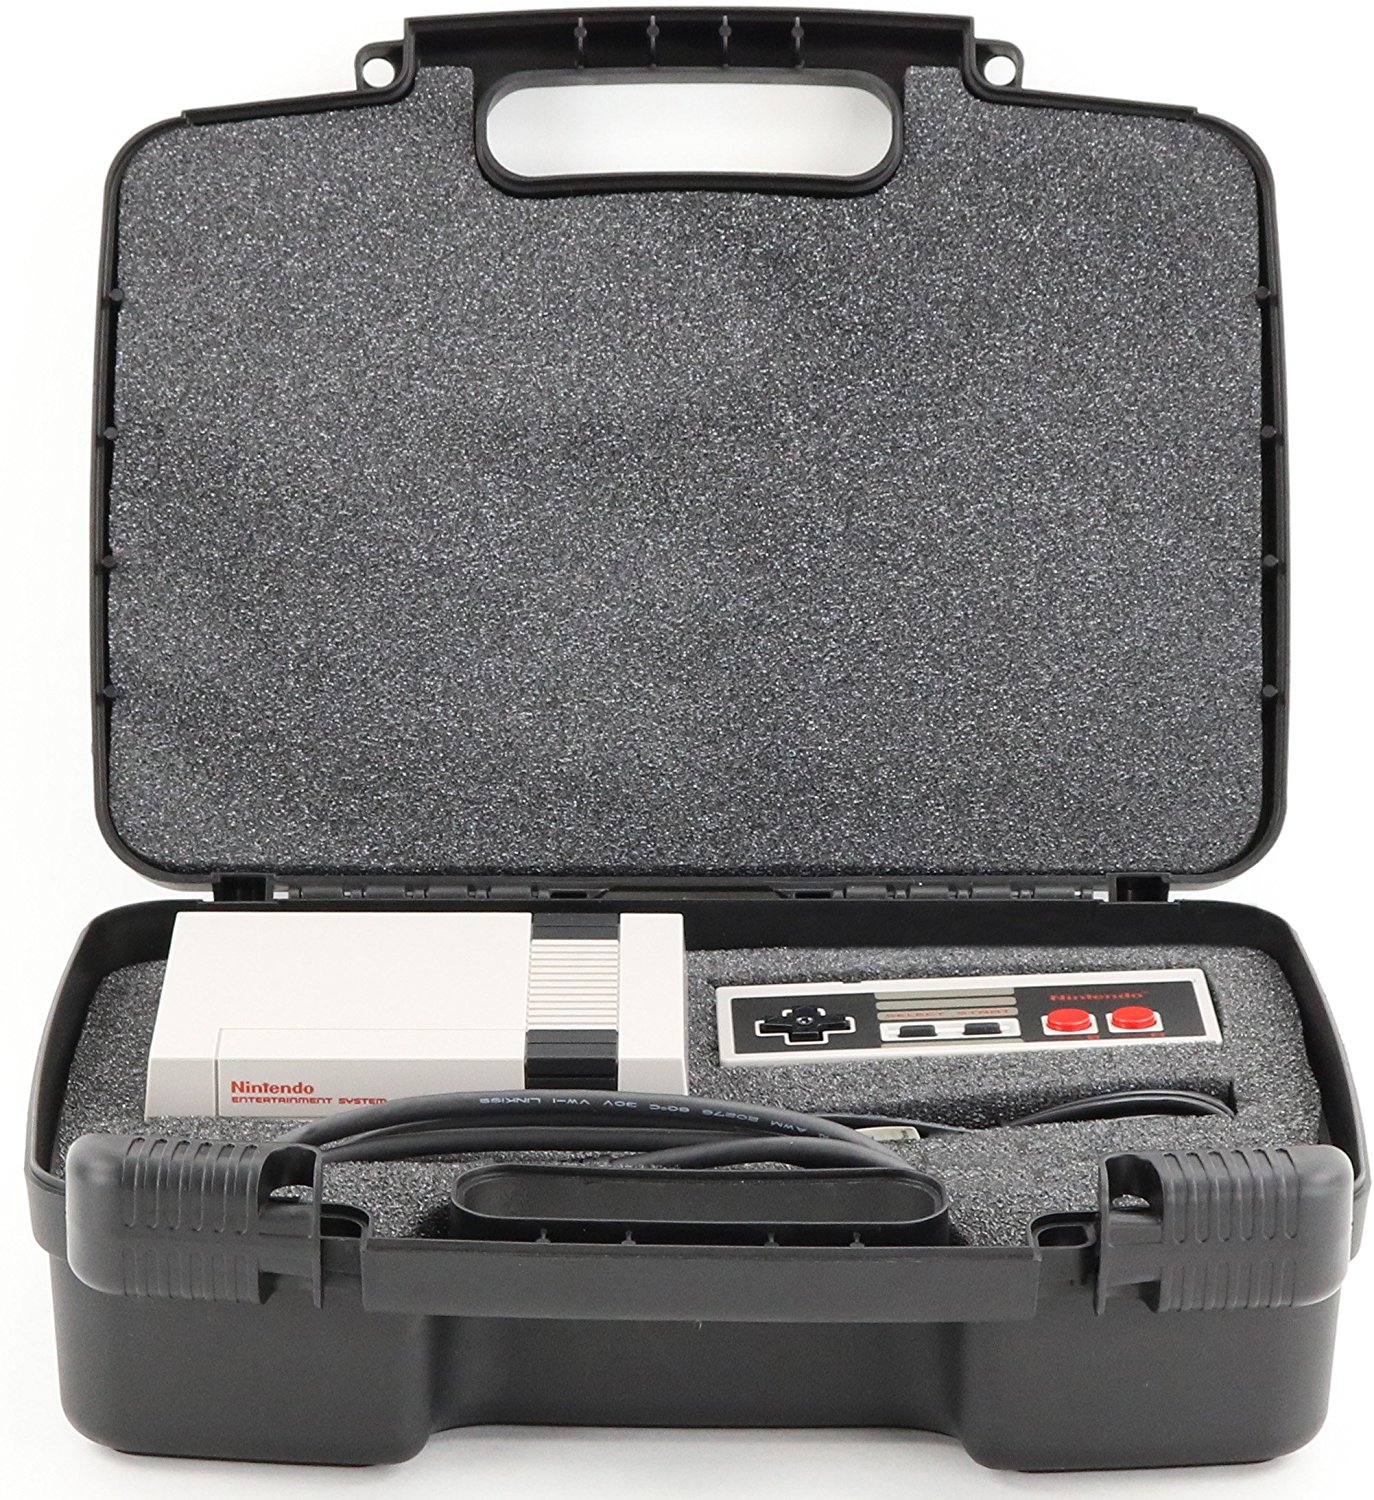 Hard Storage Carrying Case For Gaming Consoles Fits Nintendo NES Classic Mini Game Console, Two Controllers and Accessories [Nintendo DS]